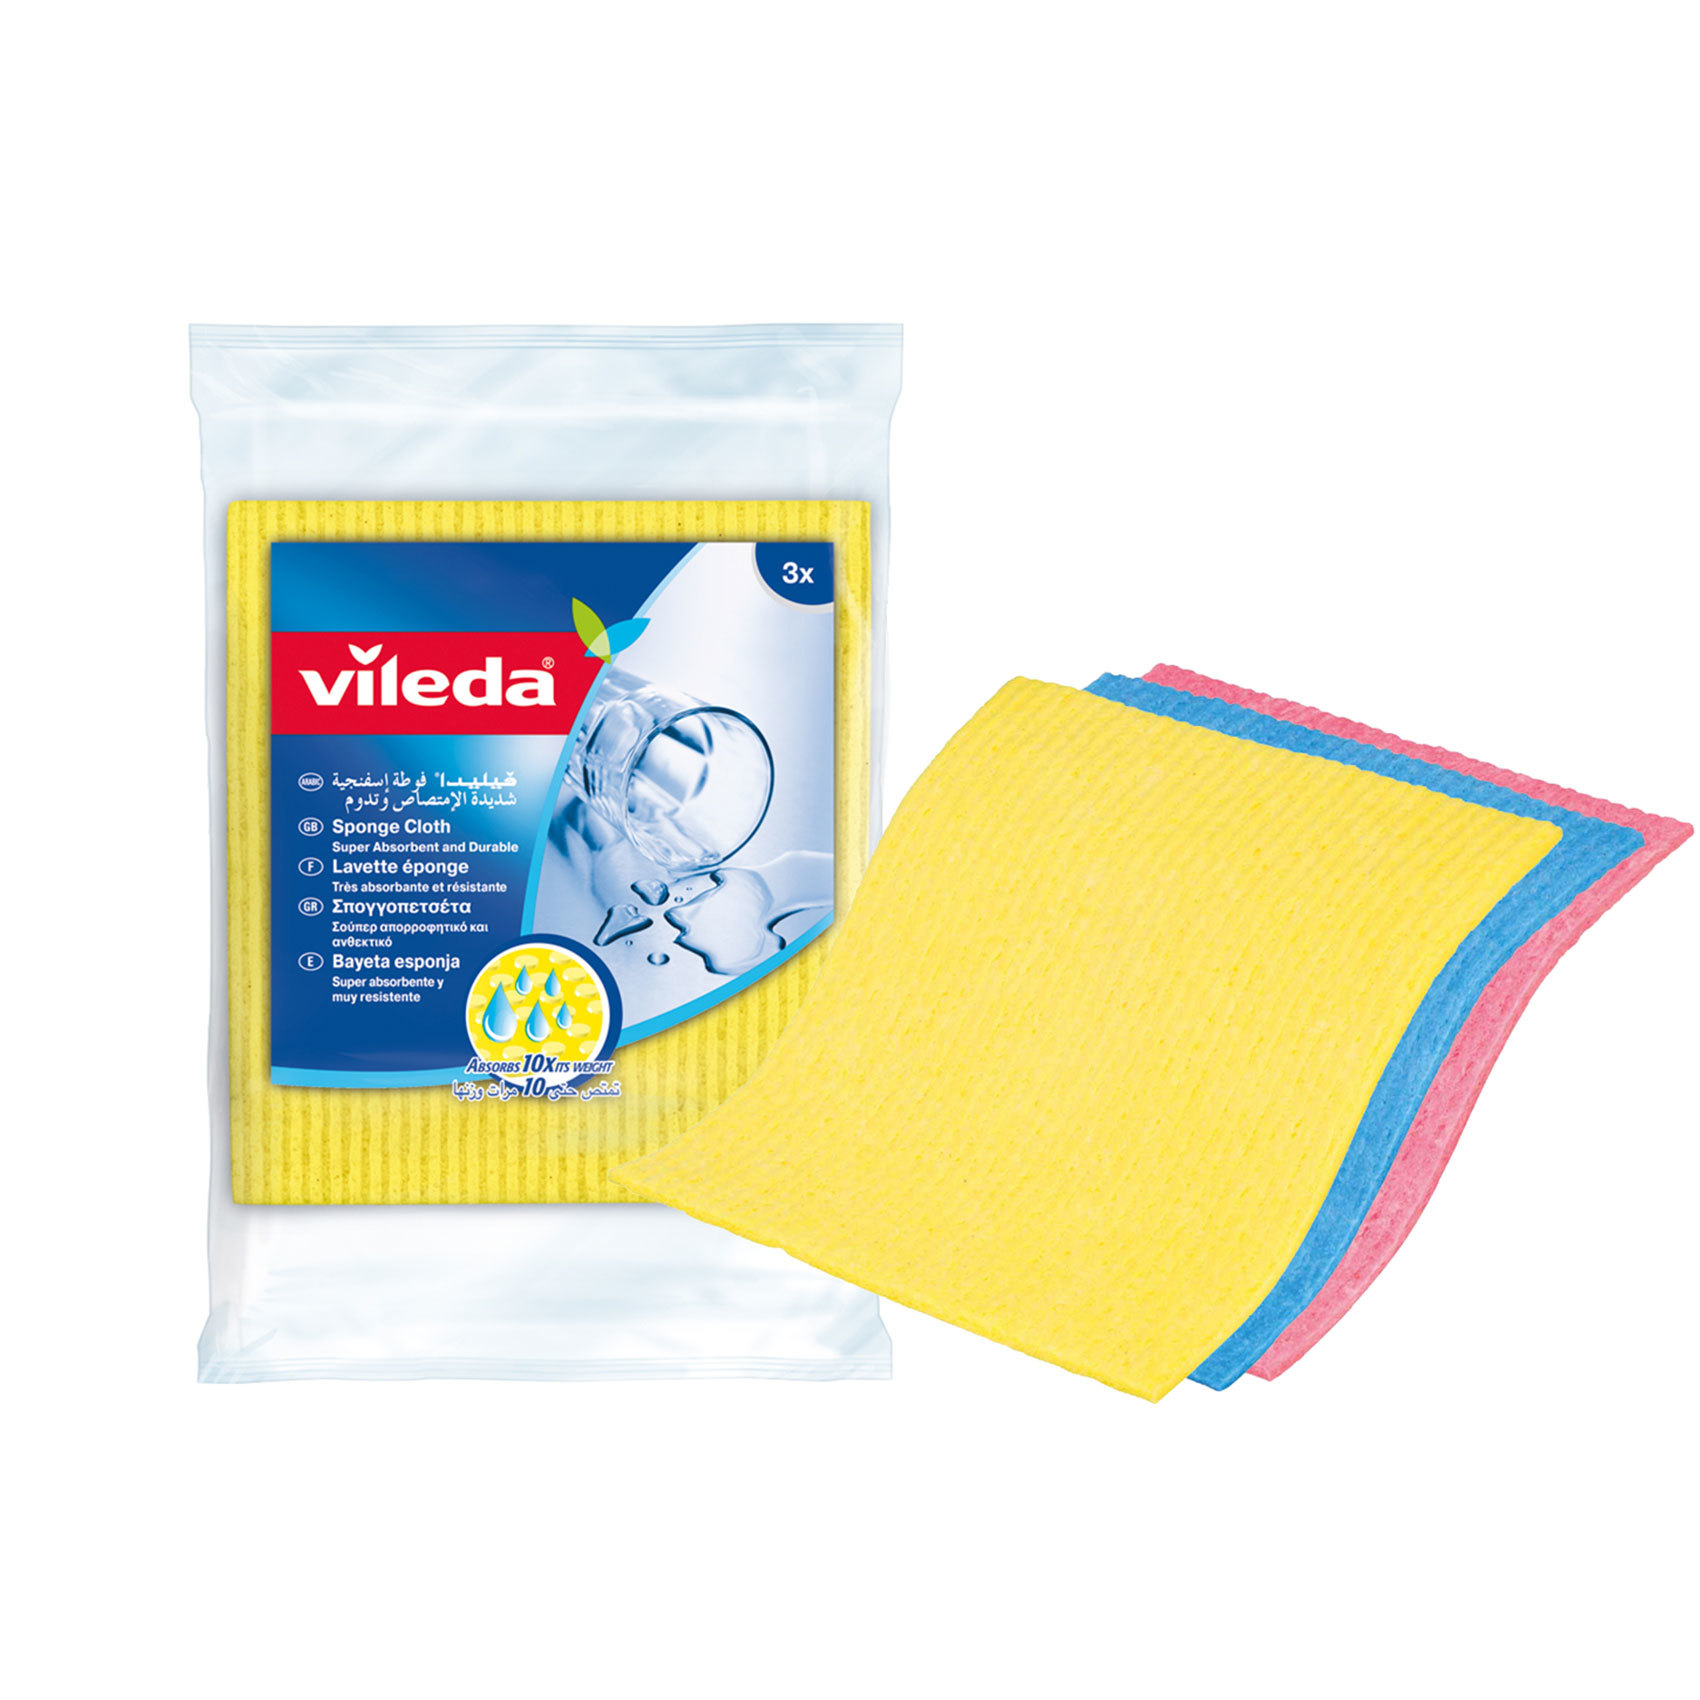 VILEDA SPONGE CLOTH 3PC